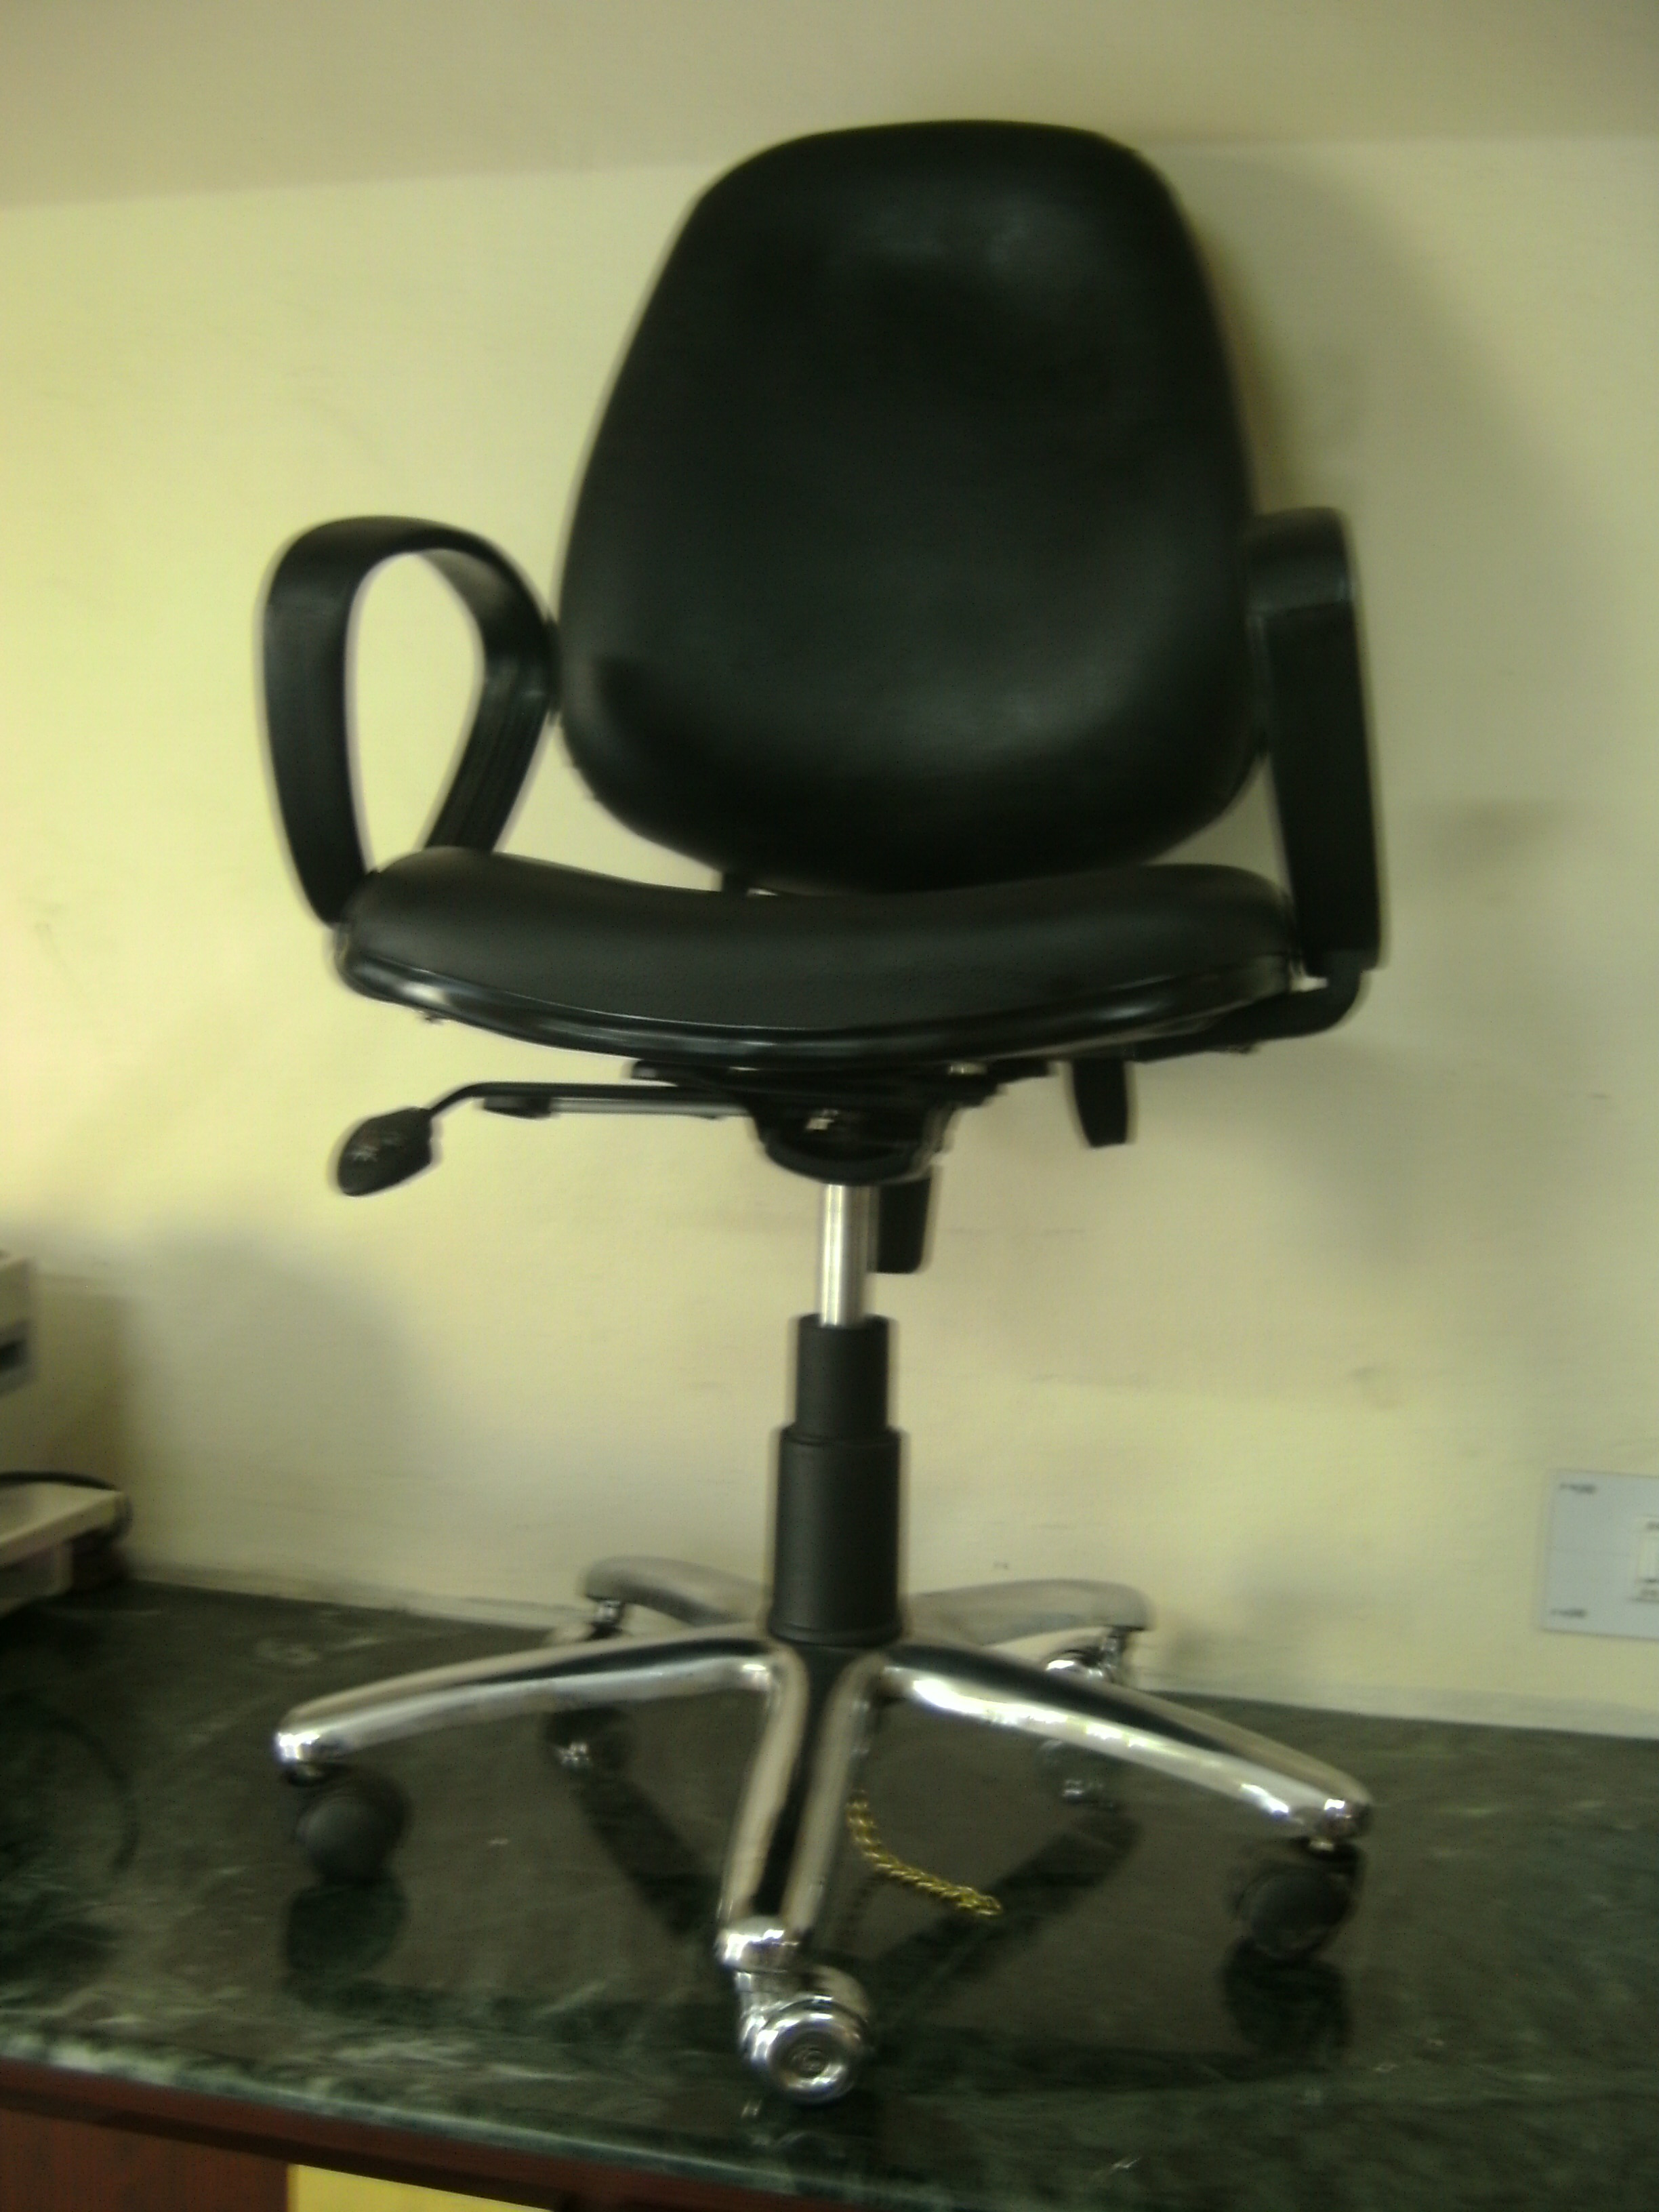 antistatic-chair-with-arms